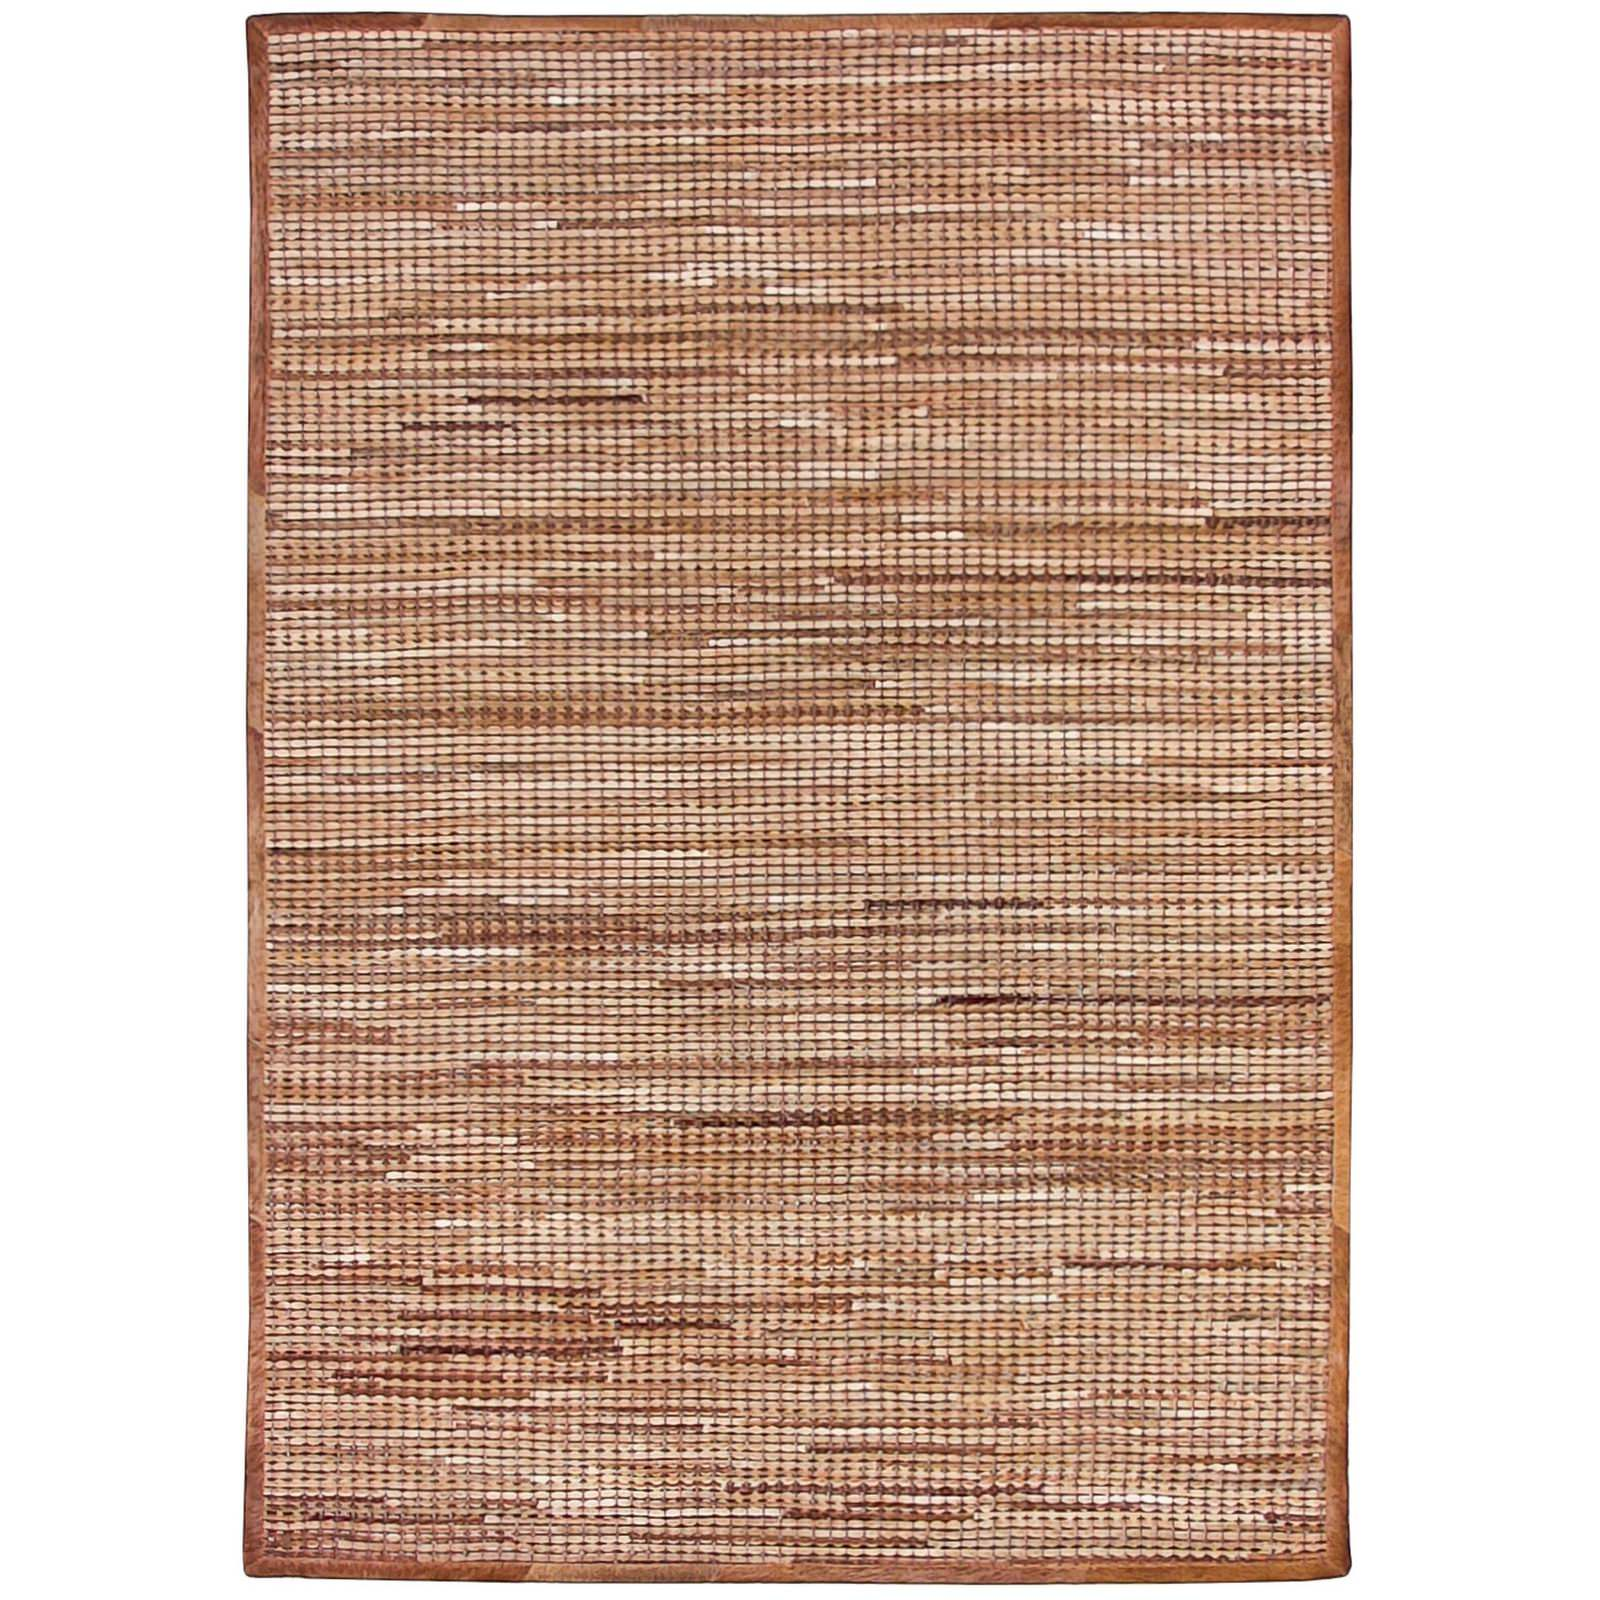 Chase Handwoven Hide & Leather Rug, 250x350cm, Caramel